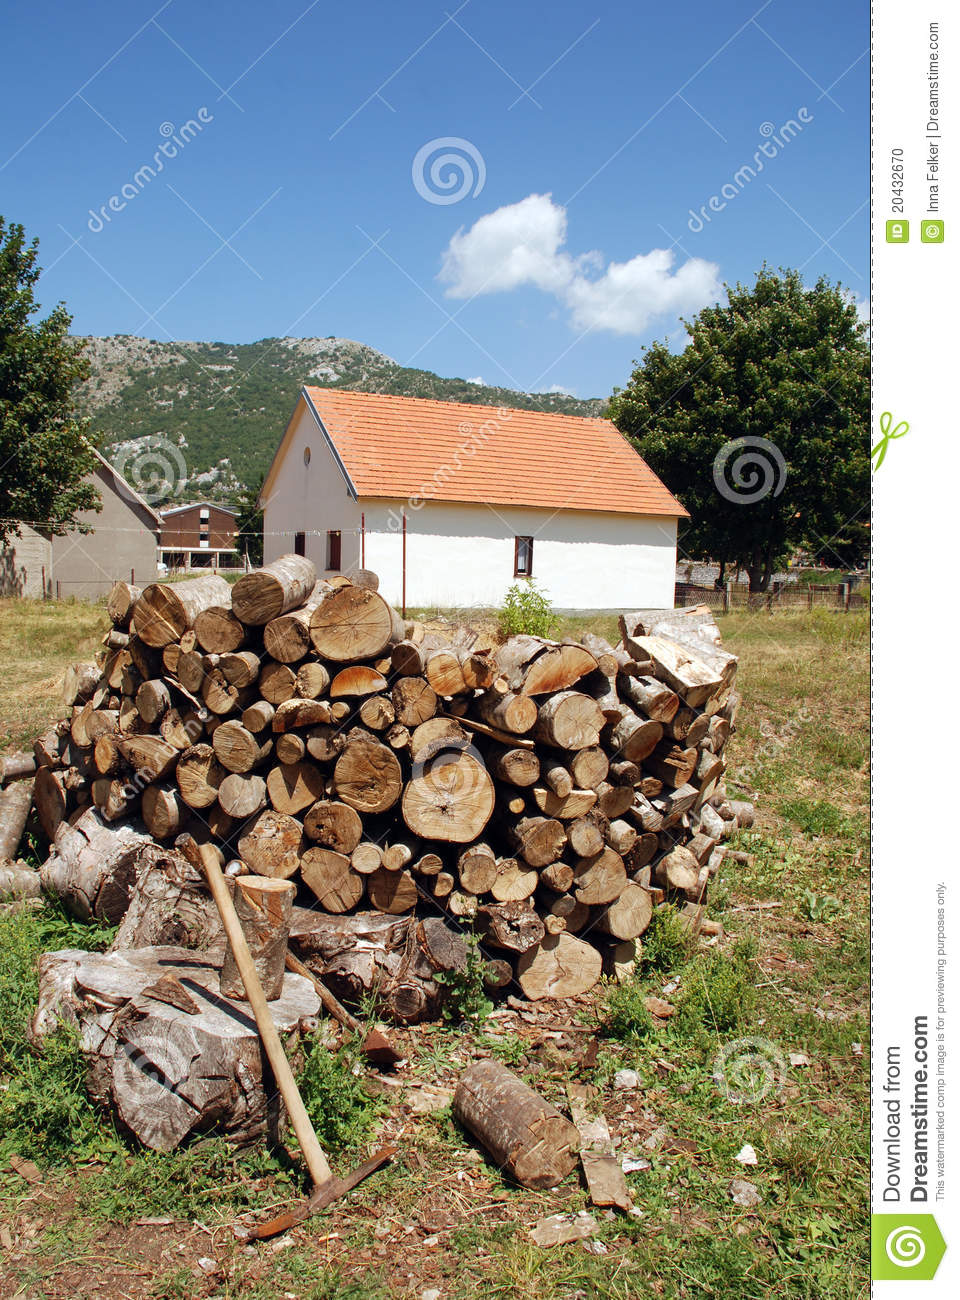 Country House With Pile Of Firewood Stock Photo Image